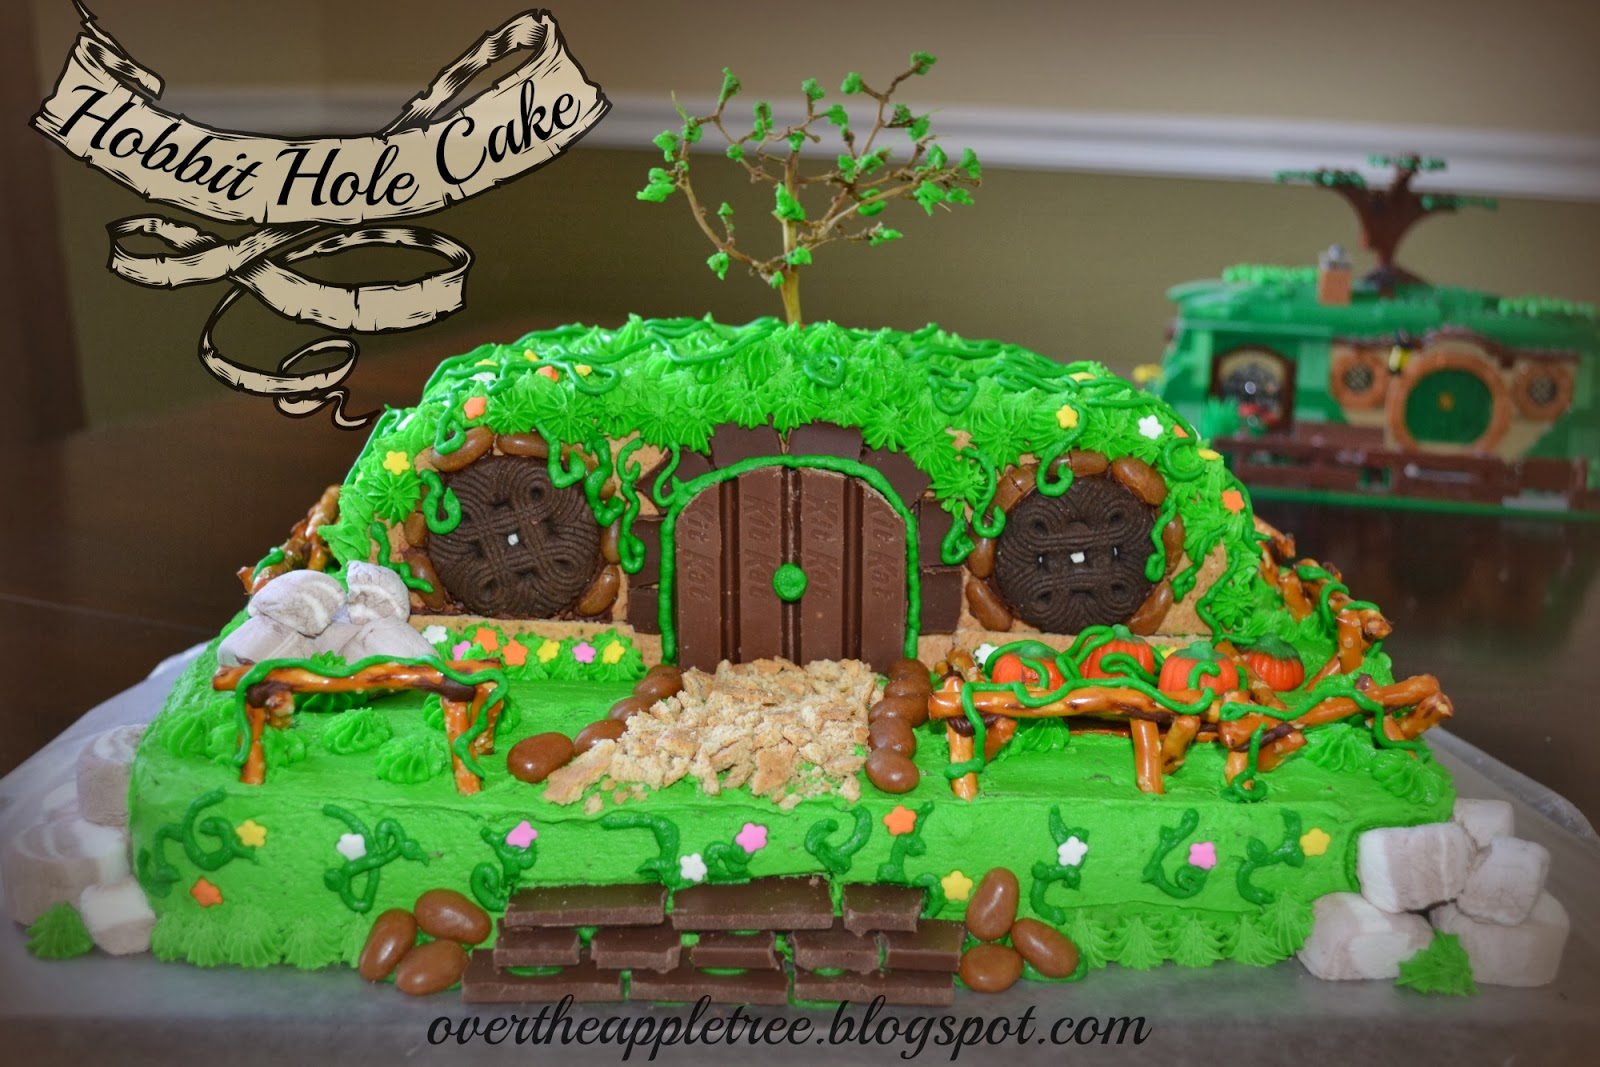 Hobbit Hole Cake by Over The Apple Tree